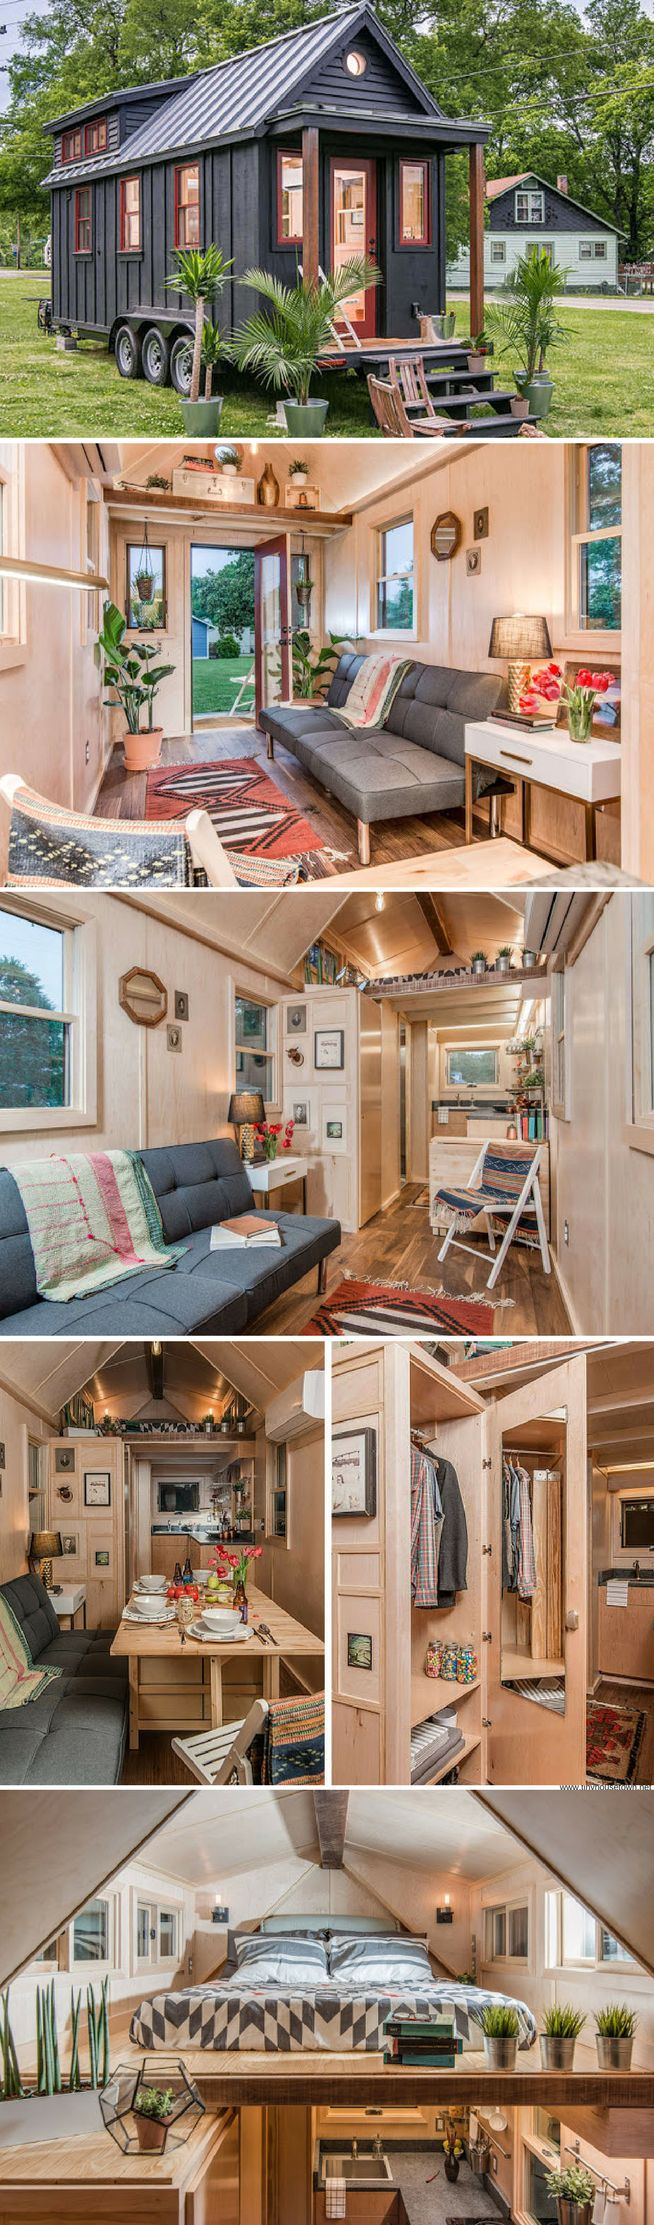 Tiny Home Interior Fascinating Best 25 Tiny Homes Interior Ideas On Pinterest  Tiny Houses